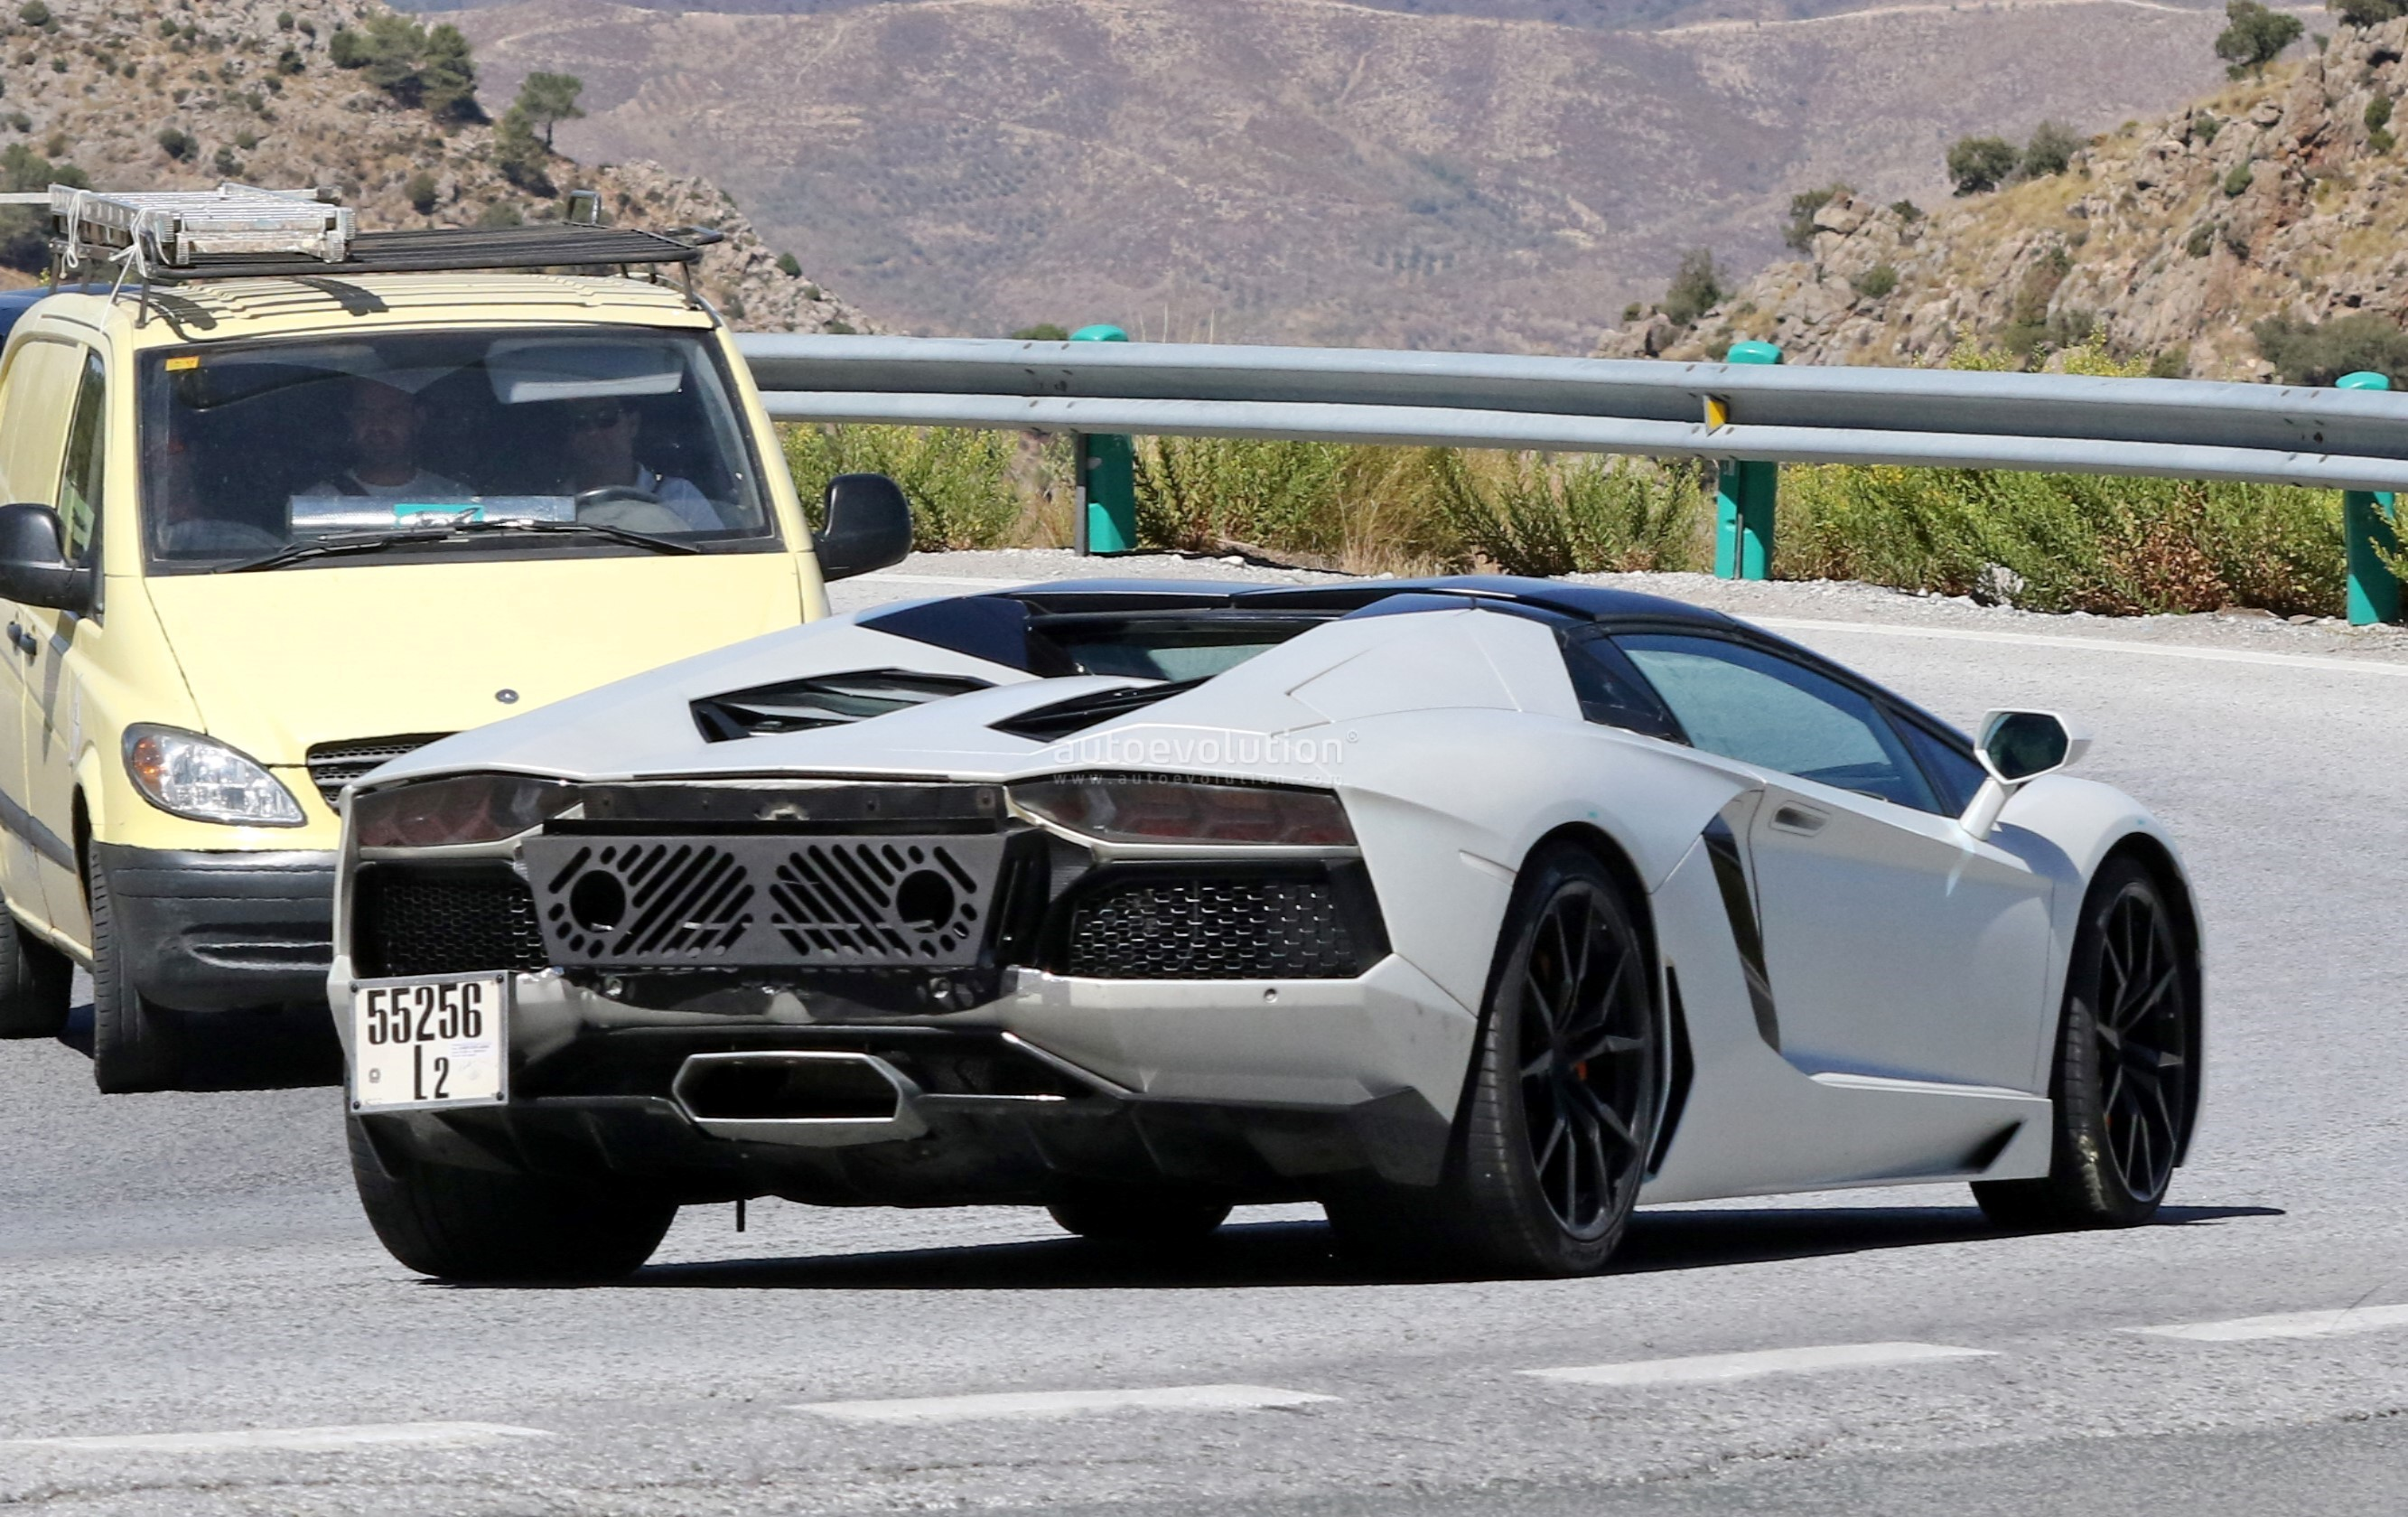 Spied New Lamborghini Aventador Variant Incoming Could Be The